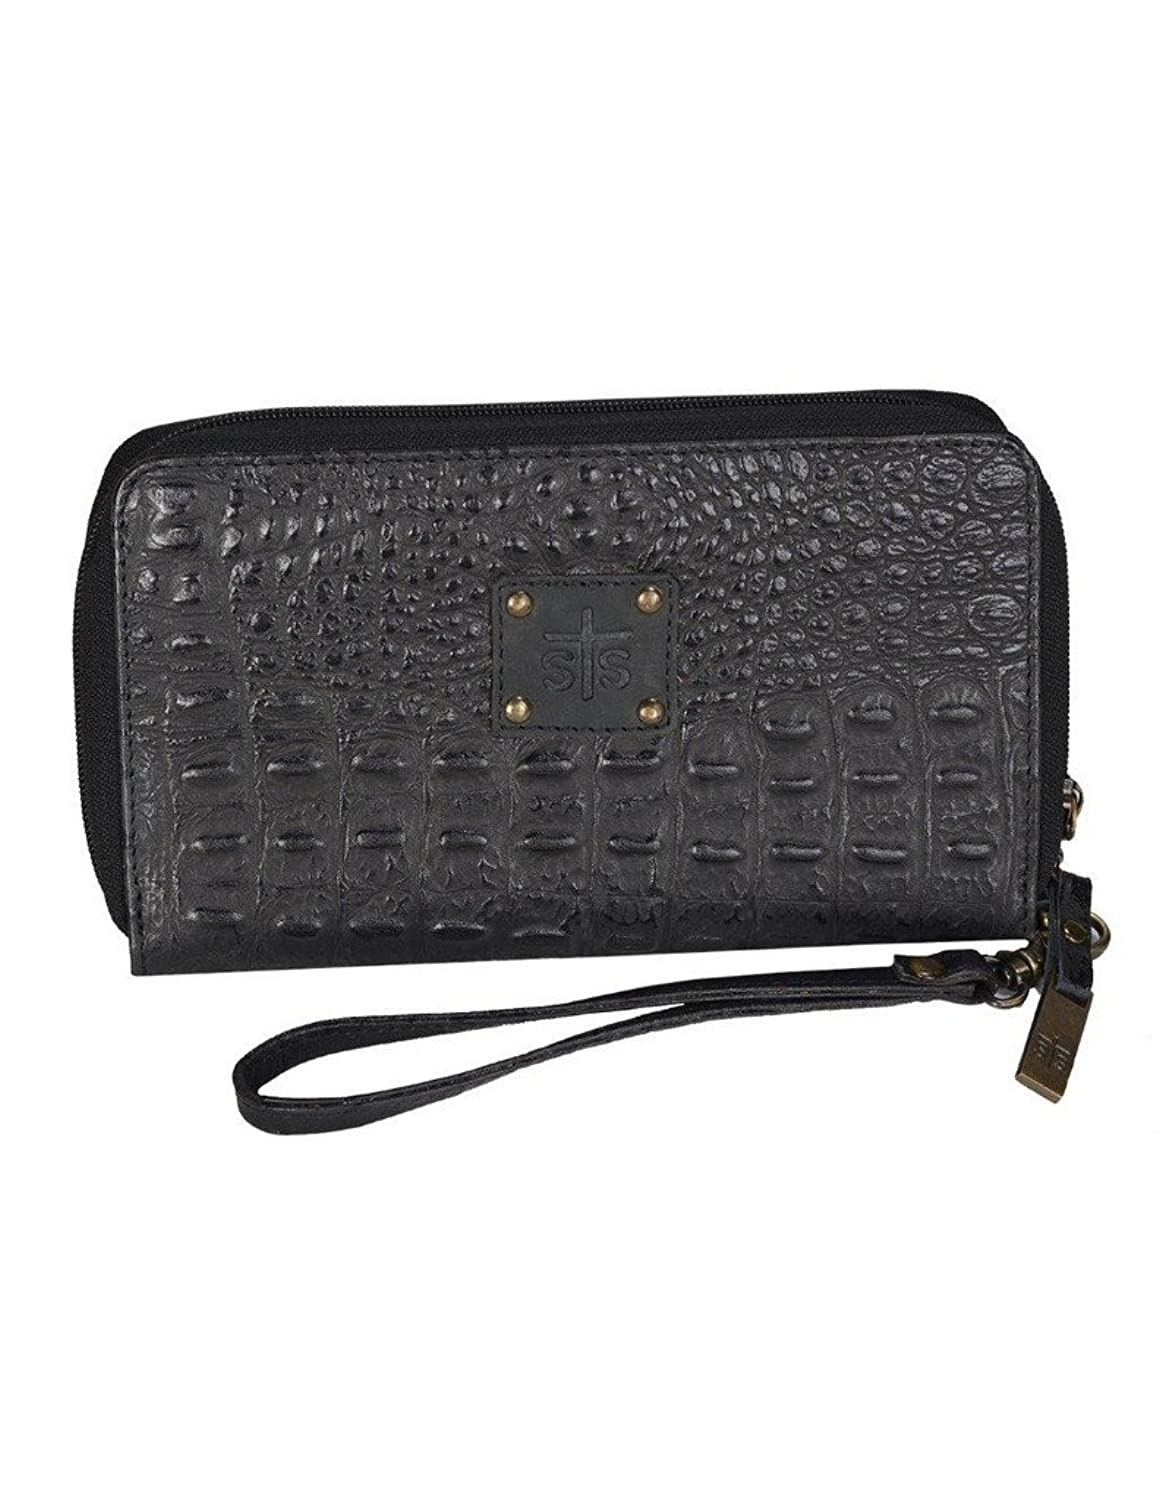 StS Ranchwear Western Bag Womens Croc Leather Kacy STS63043